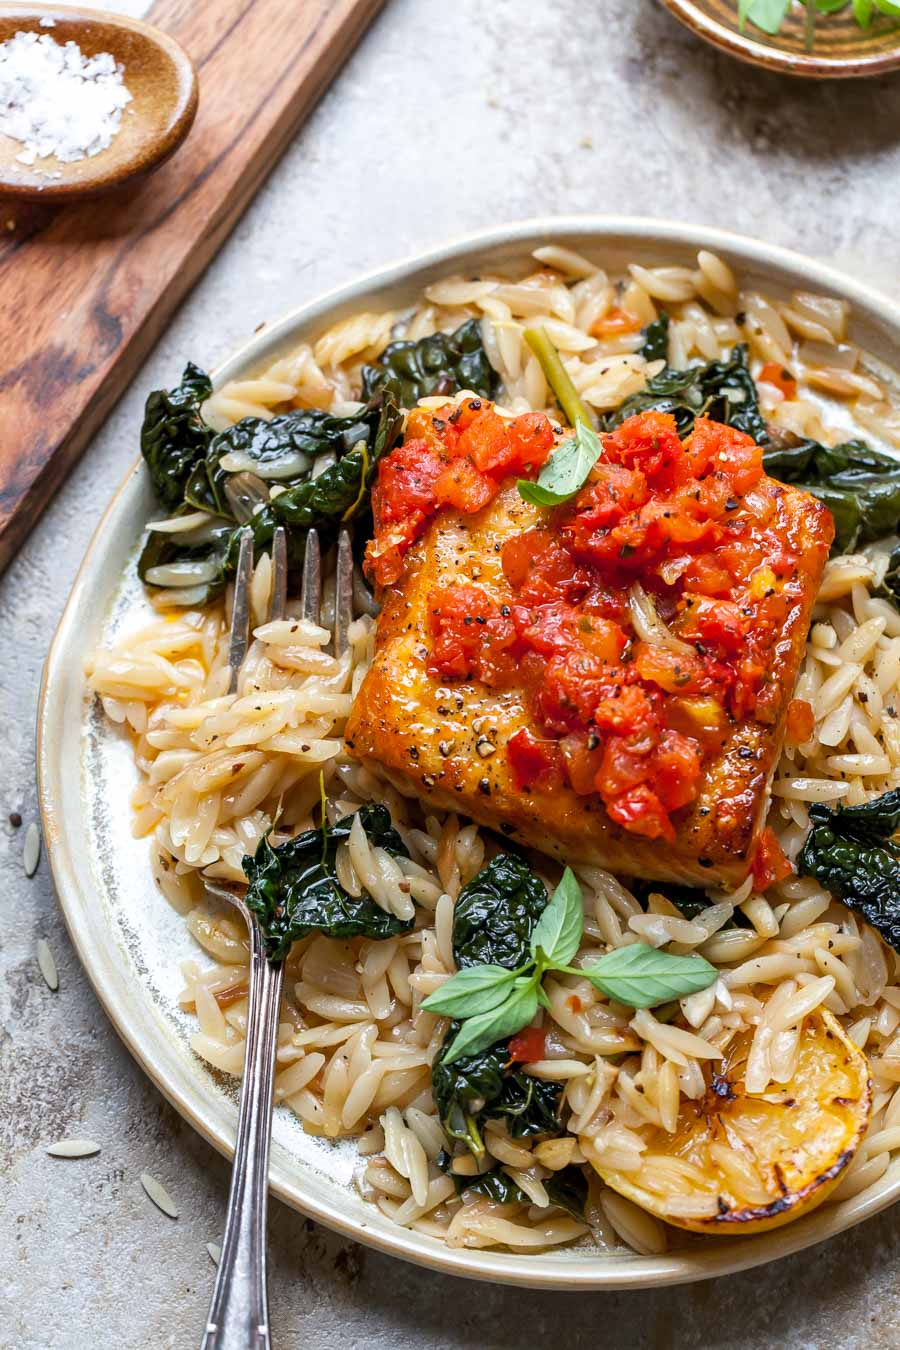 Salmon served with orzo on a plate